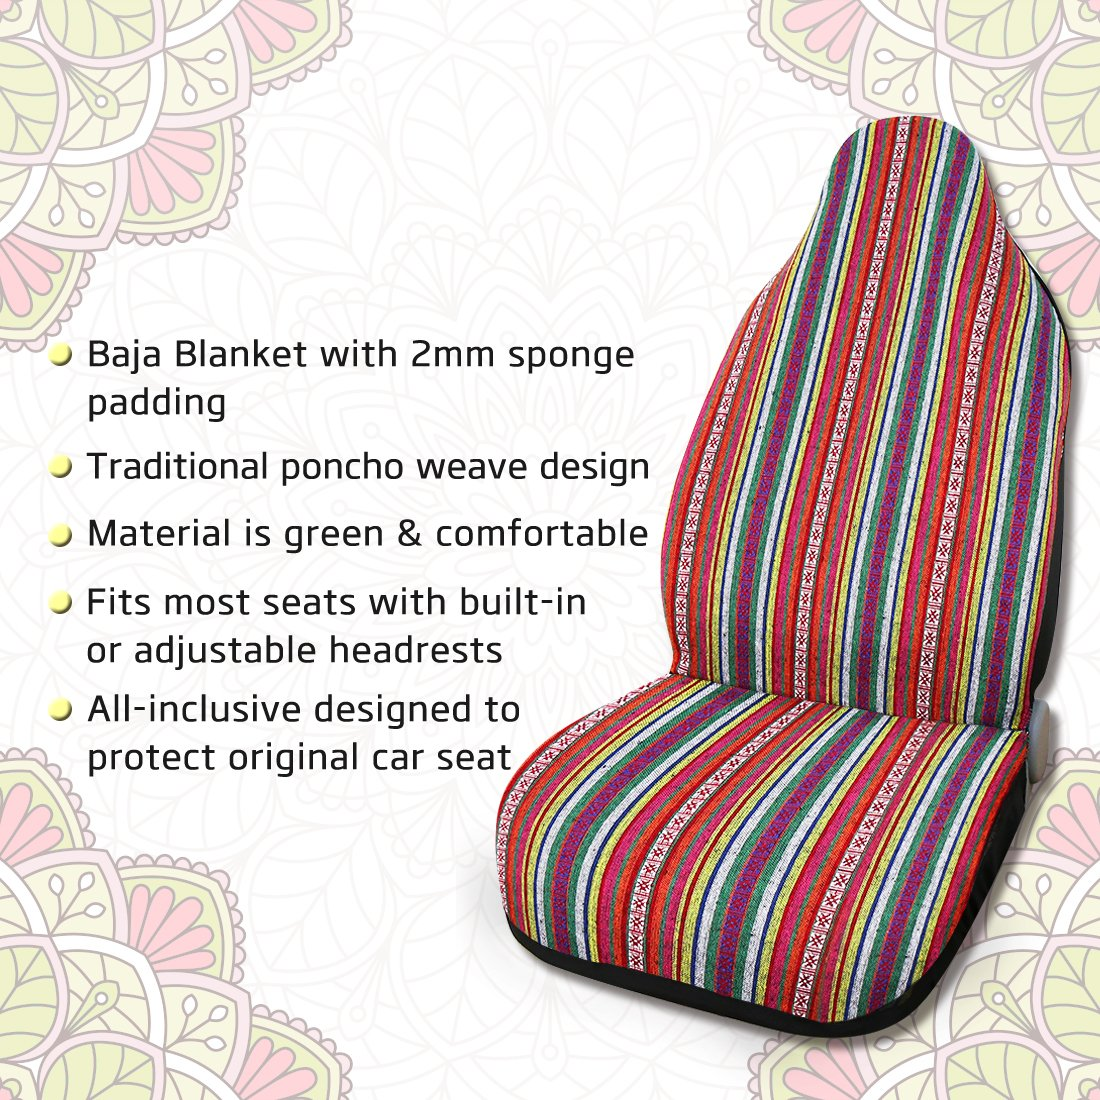 uxcell Universal Blanket Bucket Vintage Style Seat Cover for Car Automotive